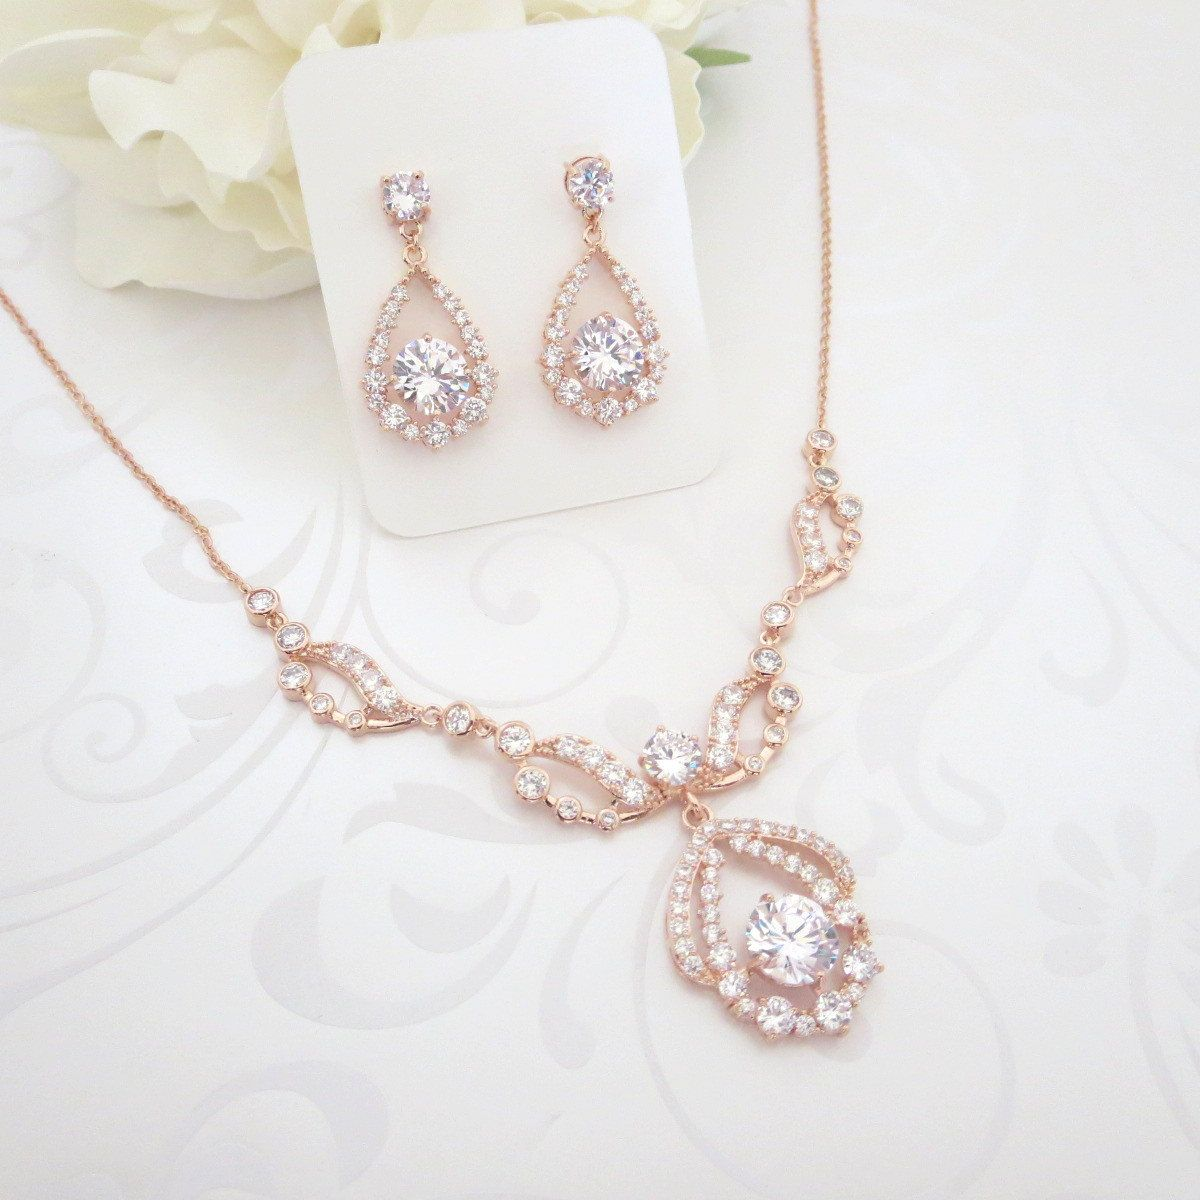 512509e98 Rose Gold Necklace set, Rose Gold Bridal necklace, Wedding jewelry set, Rose  Gold earrings, Crystal earrings, Vintage style necklace by  TheExquisiteBride on ...